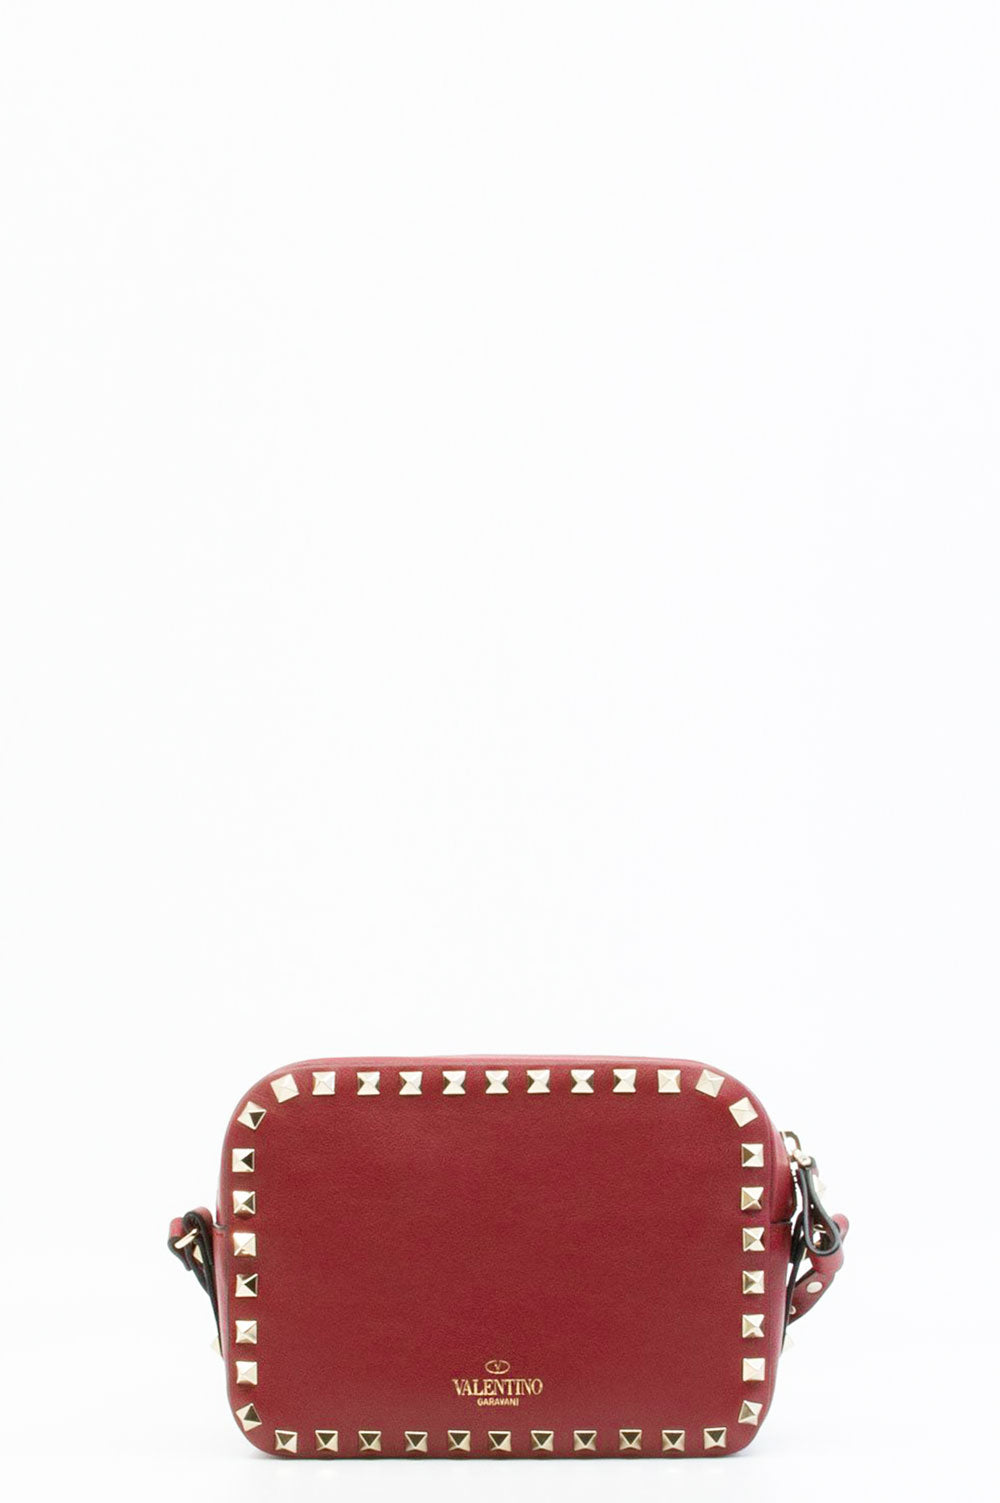 Valentino Rockstud Crossbody Bag in weinrot.